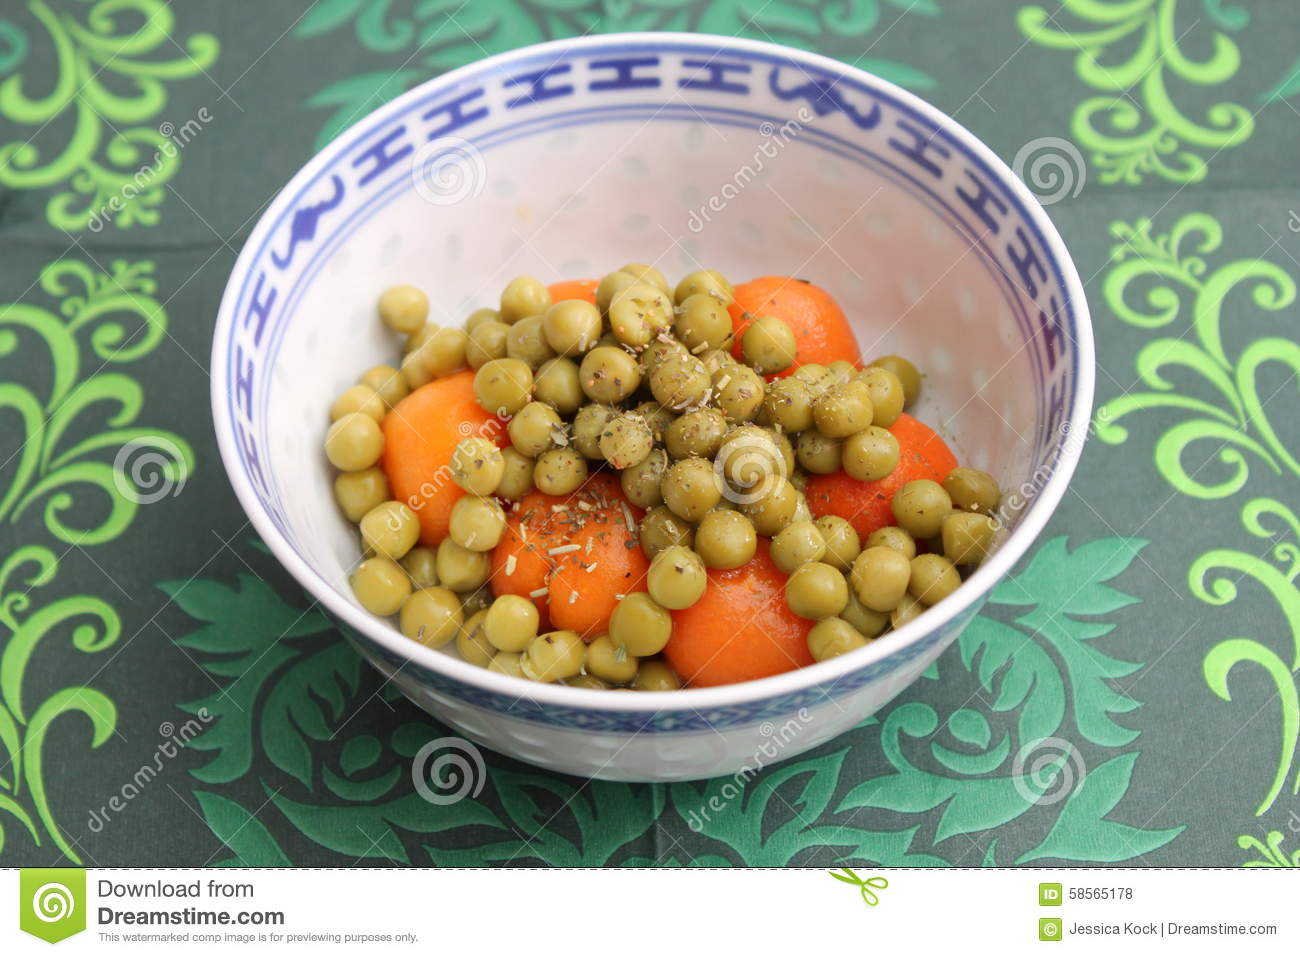 are peas a fruit healthy diet fruits